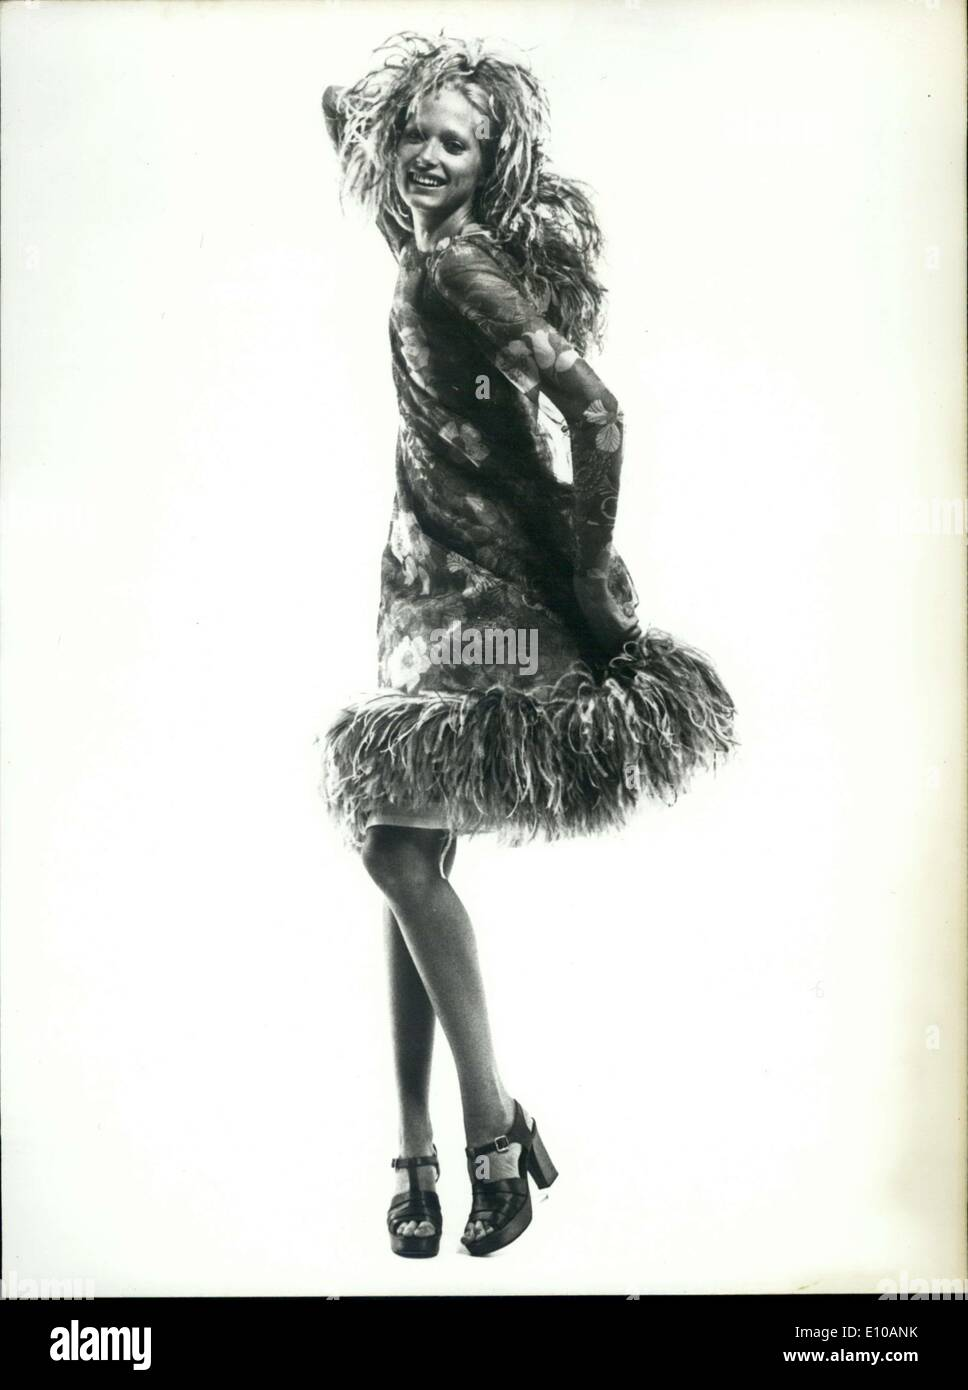 Feb. 22, 1972 - Woman Modeling Dress By Jacques Griffe Aerienne - Stock Image